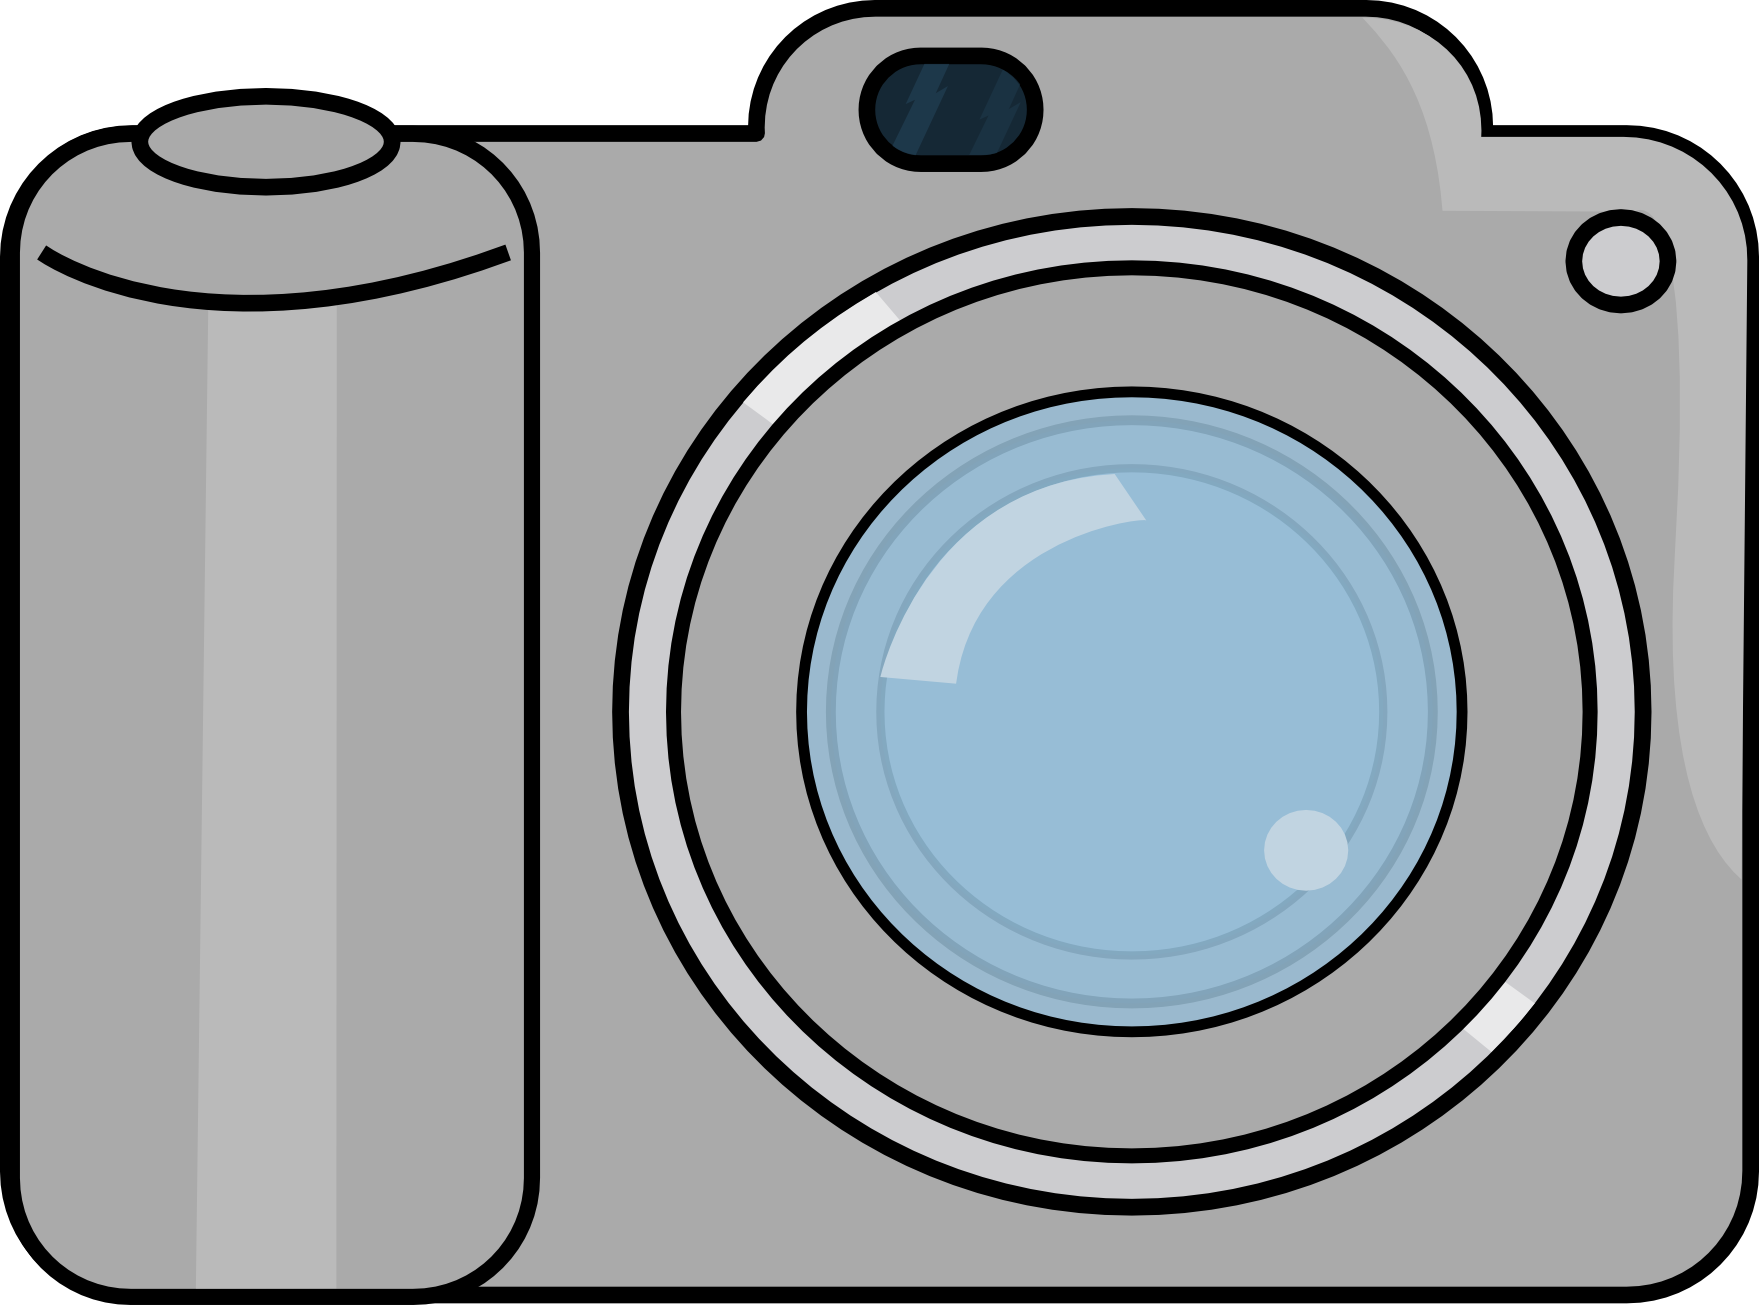 Free Free Camera Clipart, Download Free Clip Art, Free Clip.